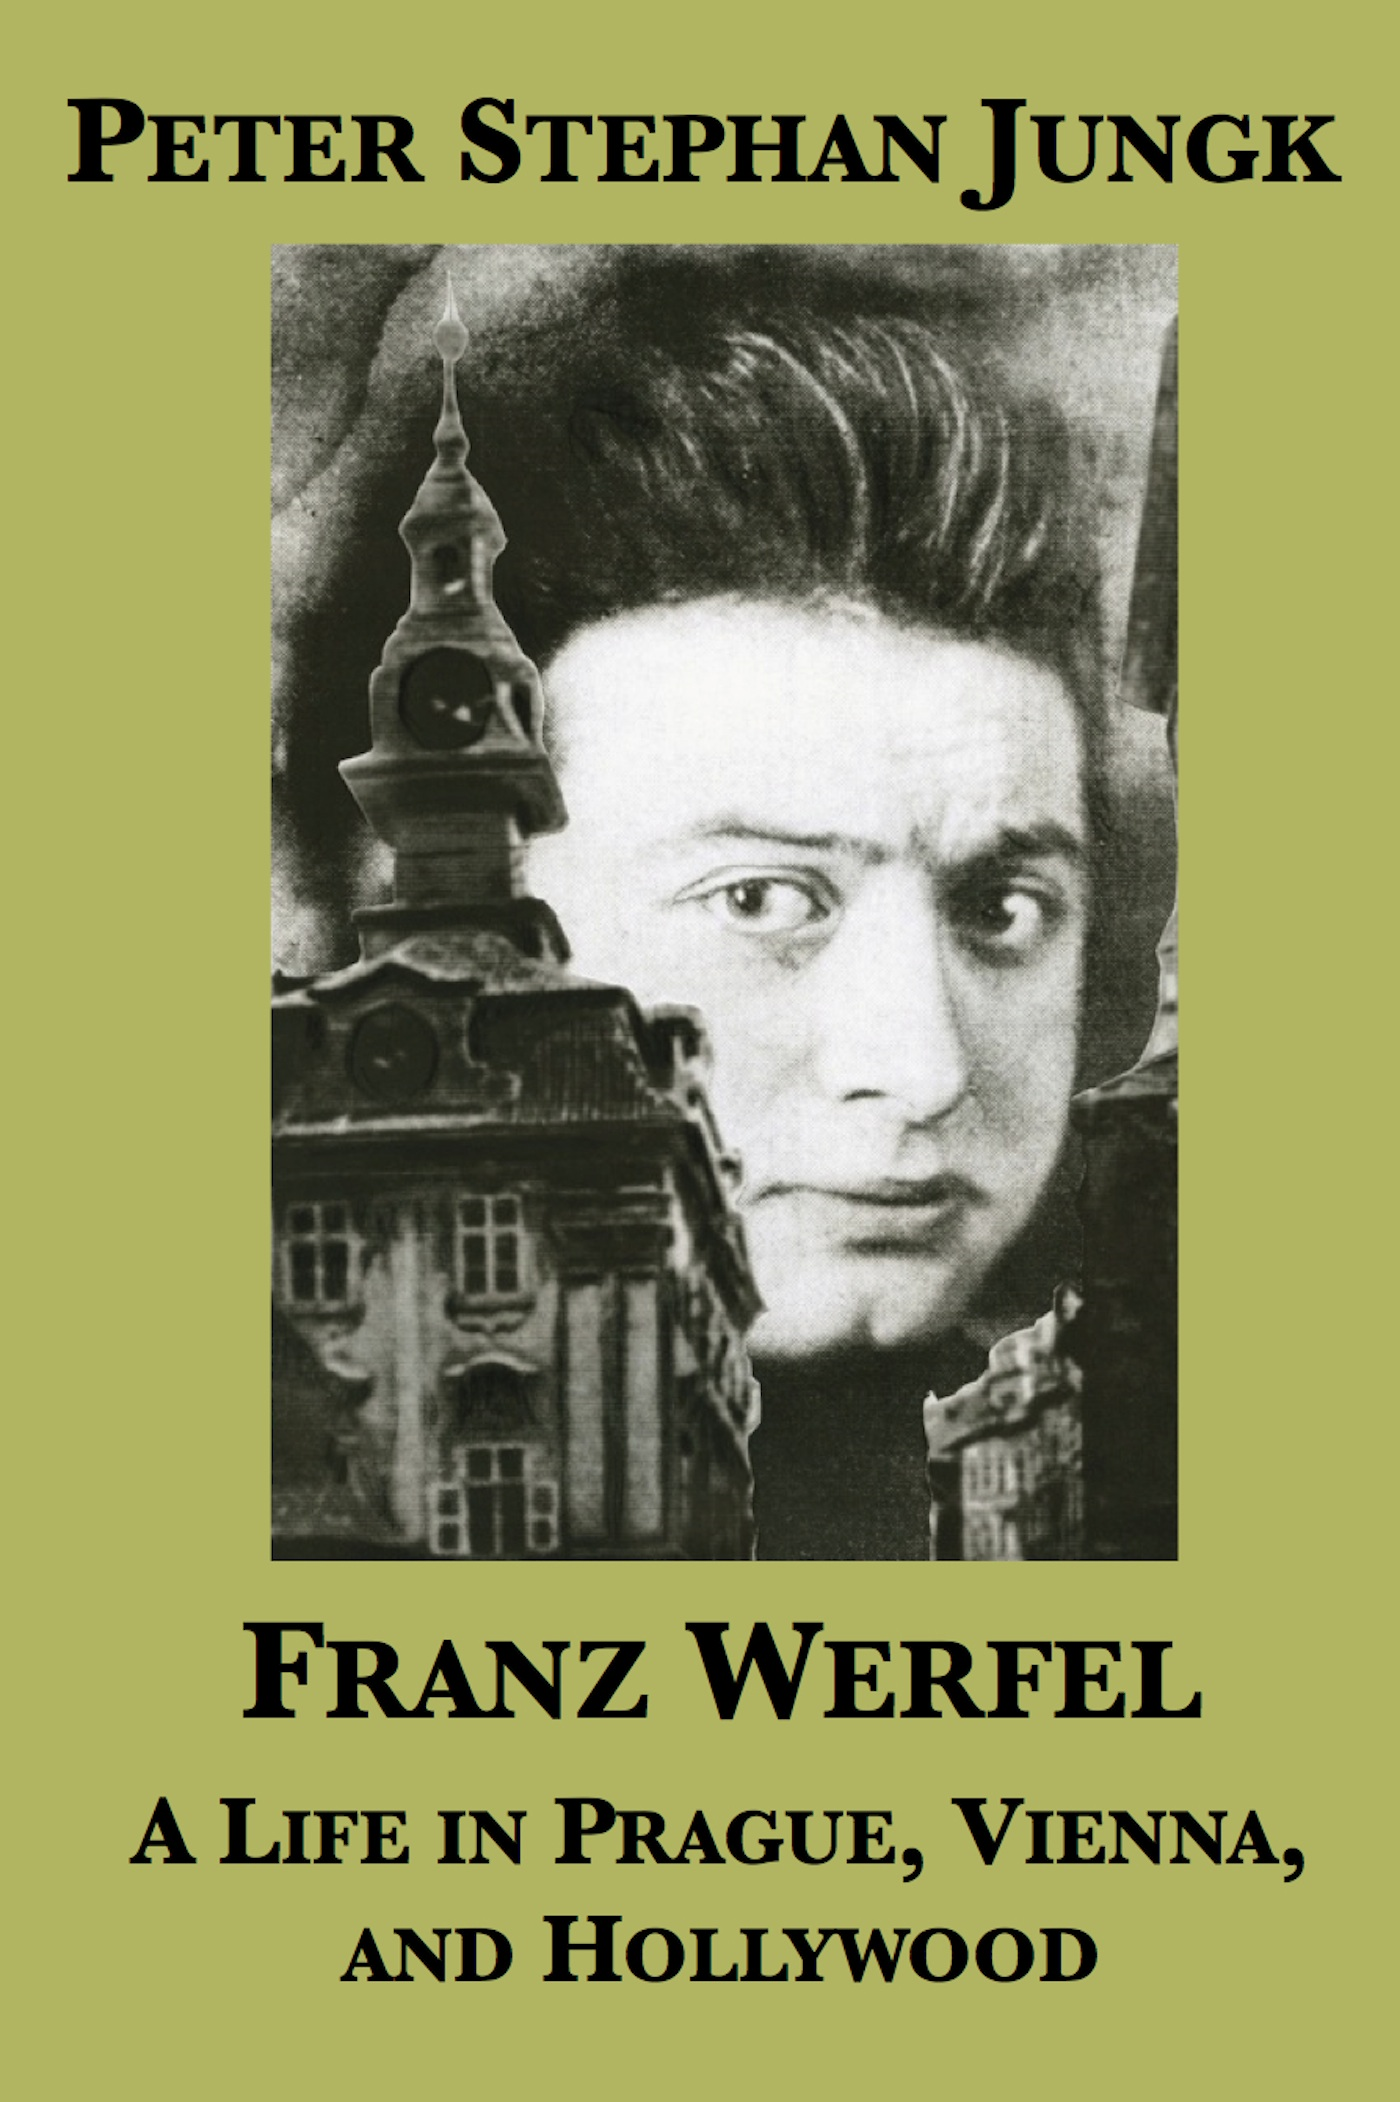 Franz Werfel: A Life in Prague, Vienna, and Hollywood